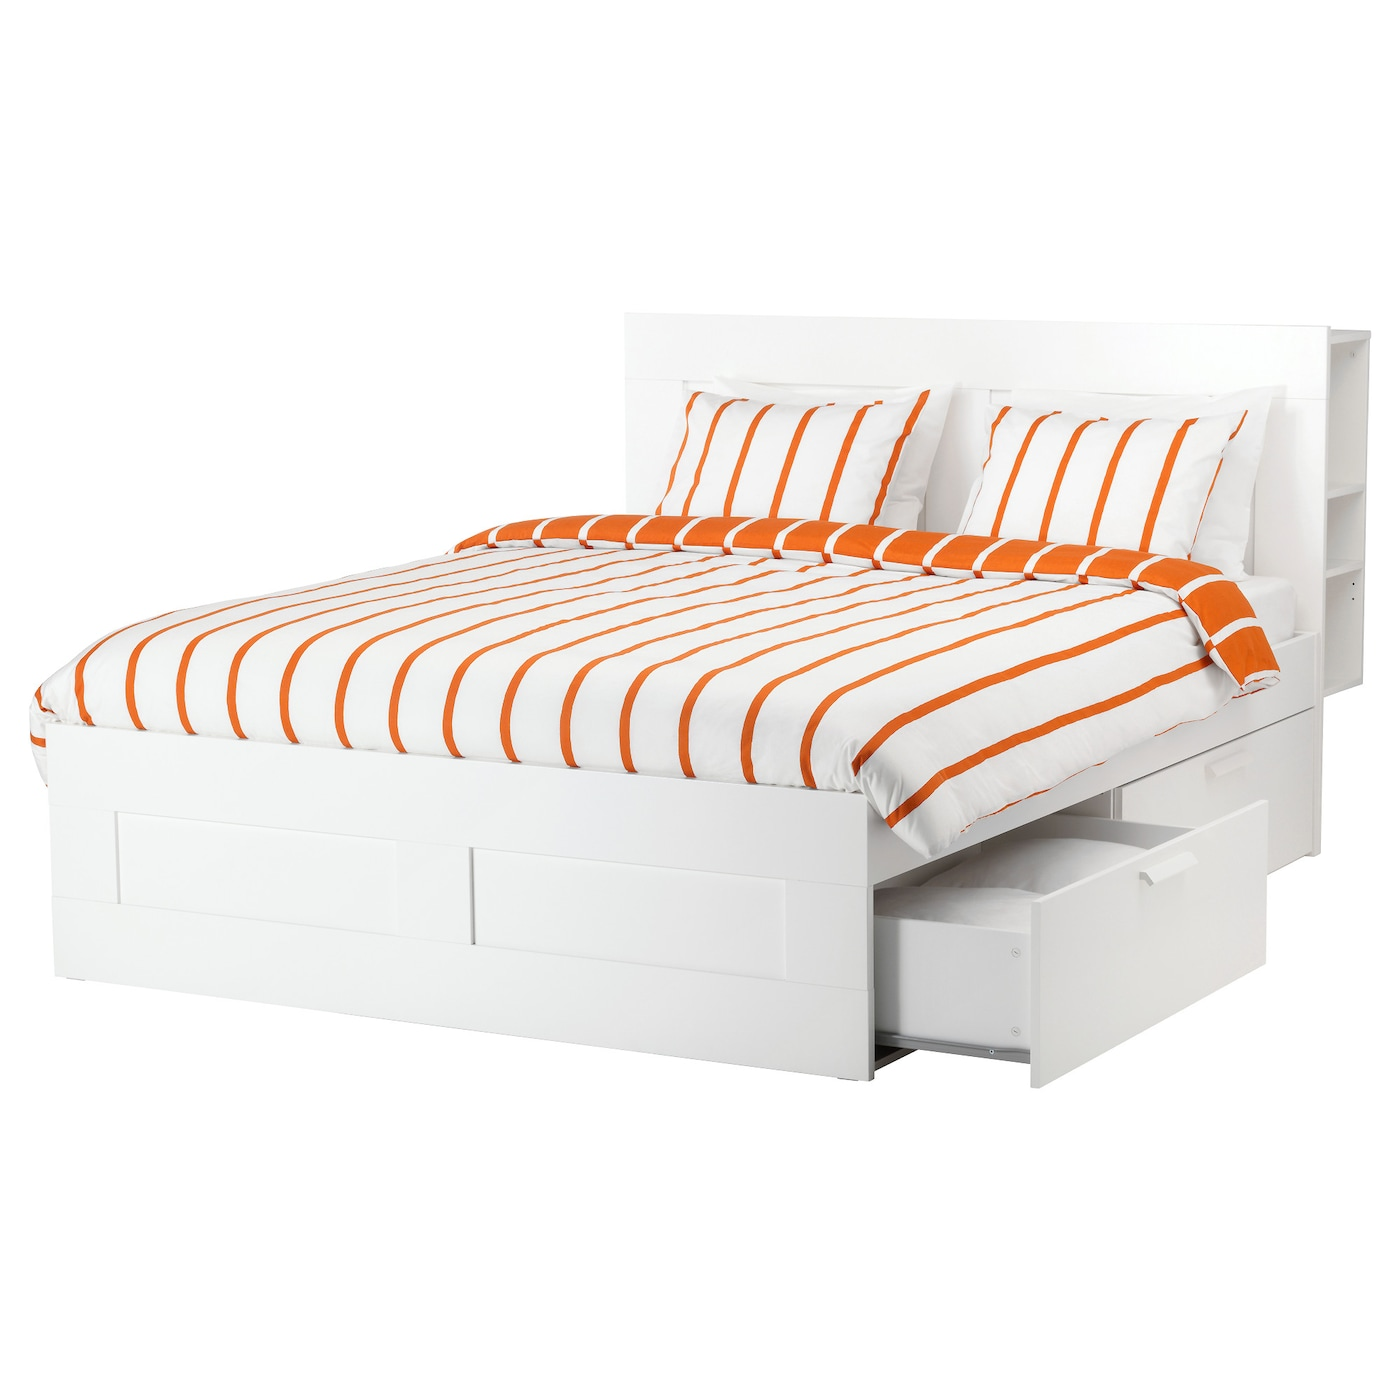 Brimnes bed frame w storage and headboard white lur y for Queen size bed ikea